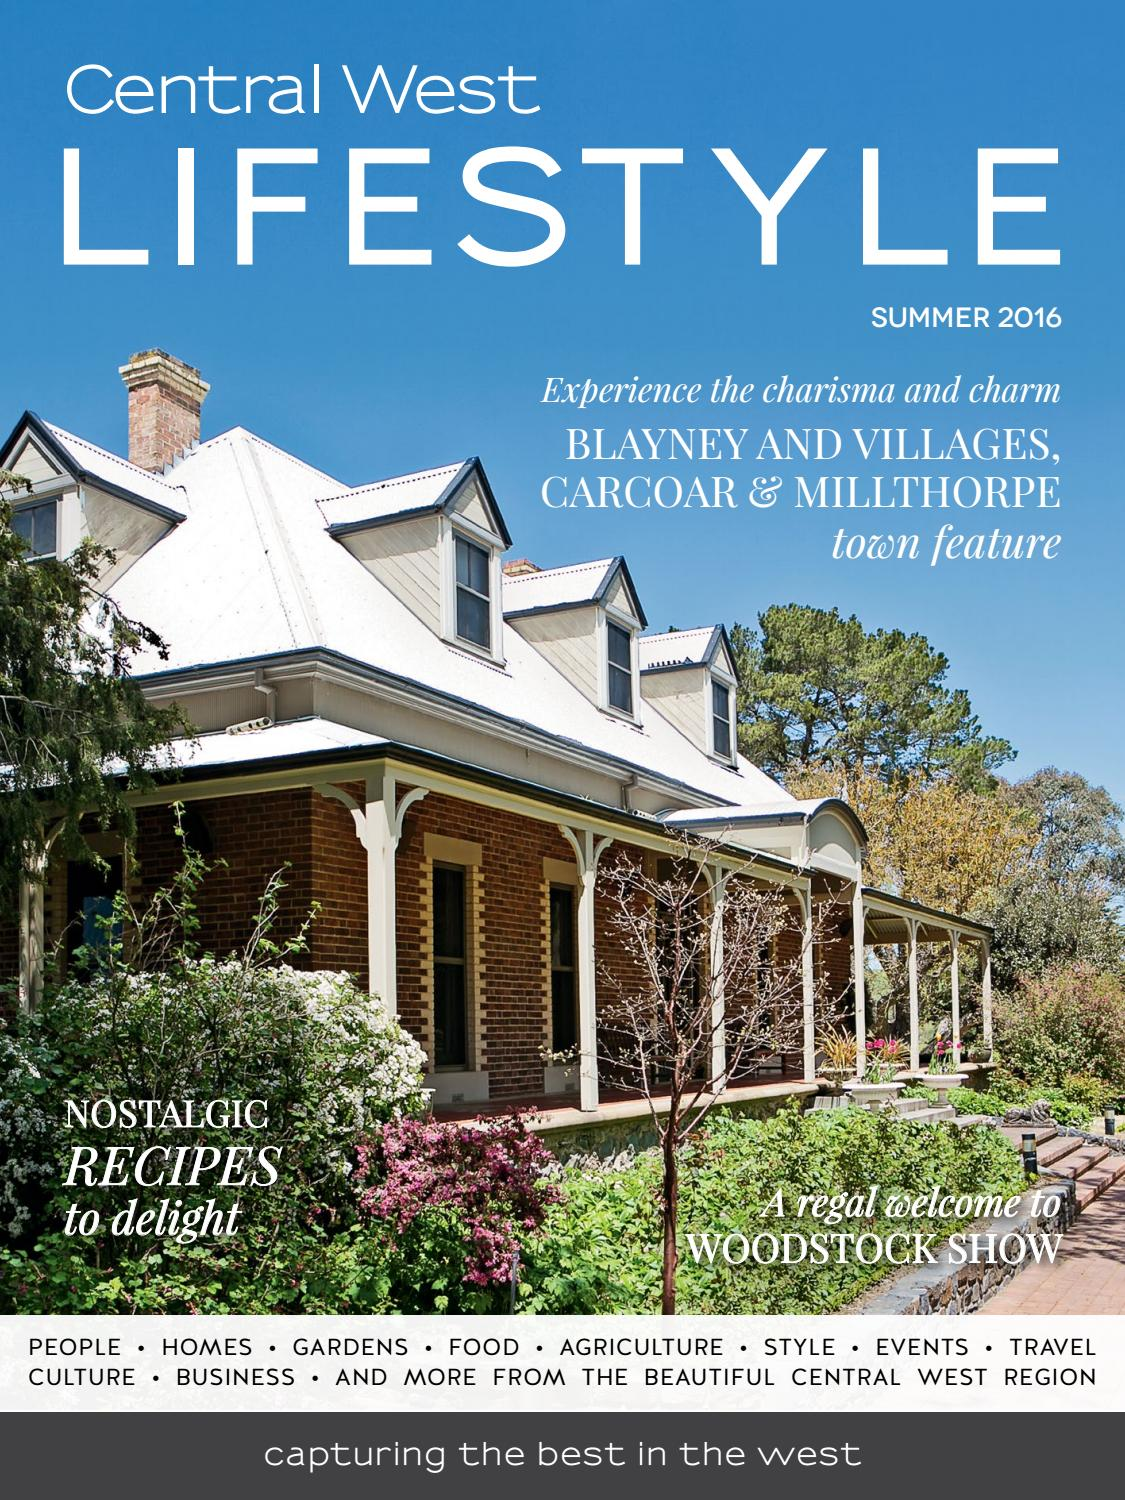 15 Central West Lifestyle Summer 2016 By Green Acres Sprinkler Company Wiring Connections Hub Vs Daisy Magazine Issuu